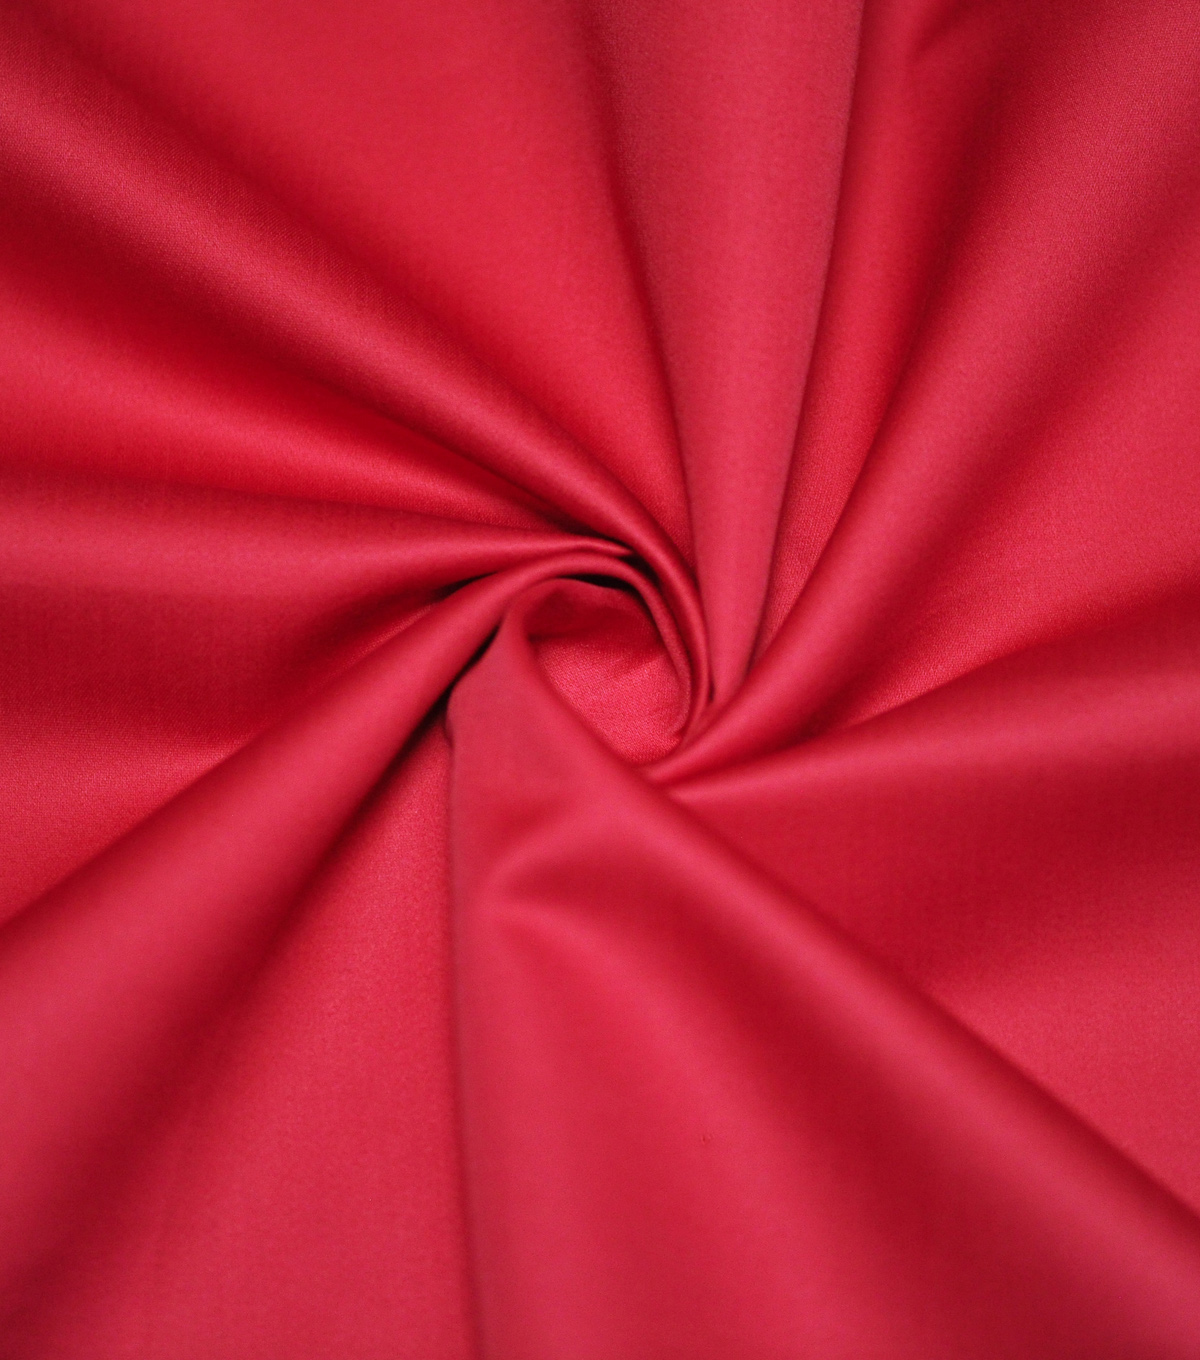 Supima Sateen Cotton Fabric-Solids, Lipstick Red